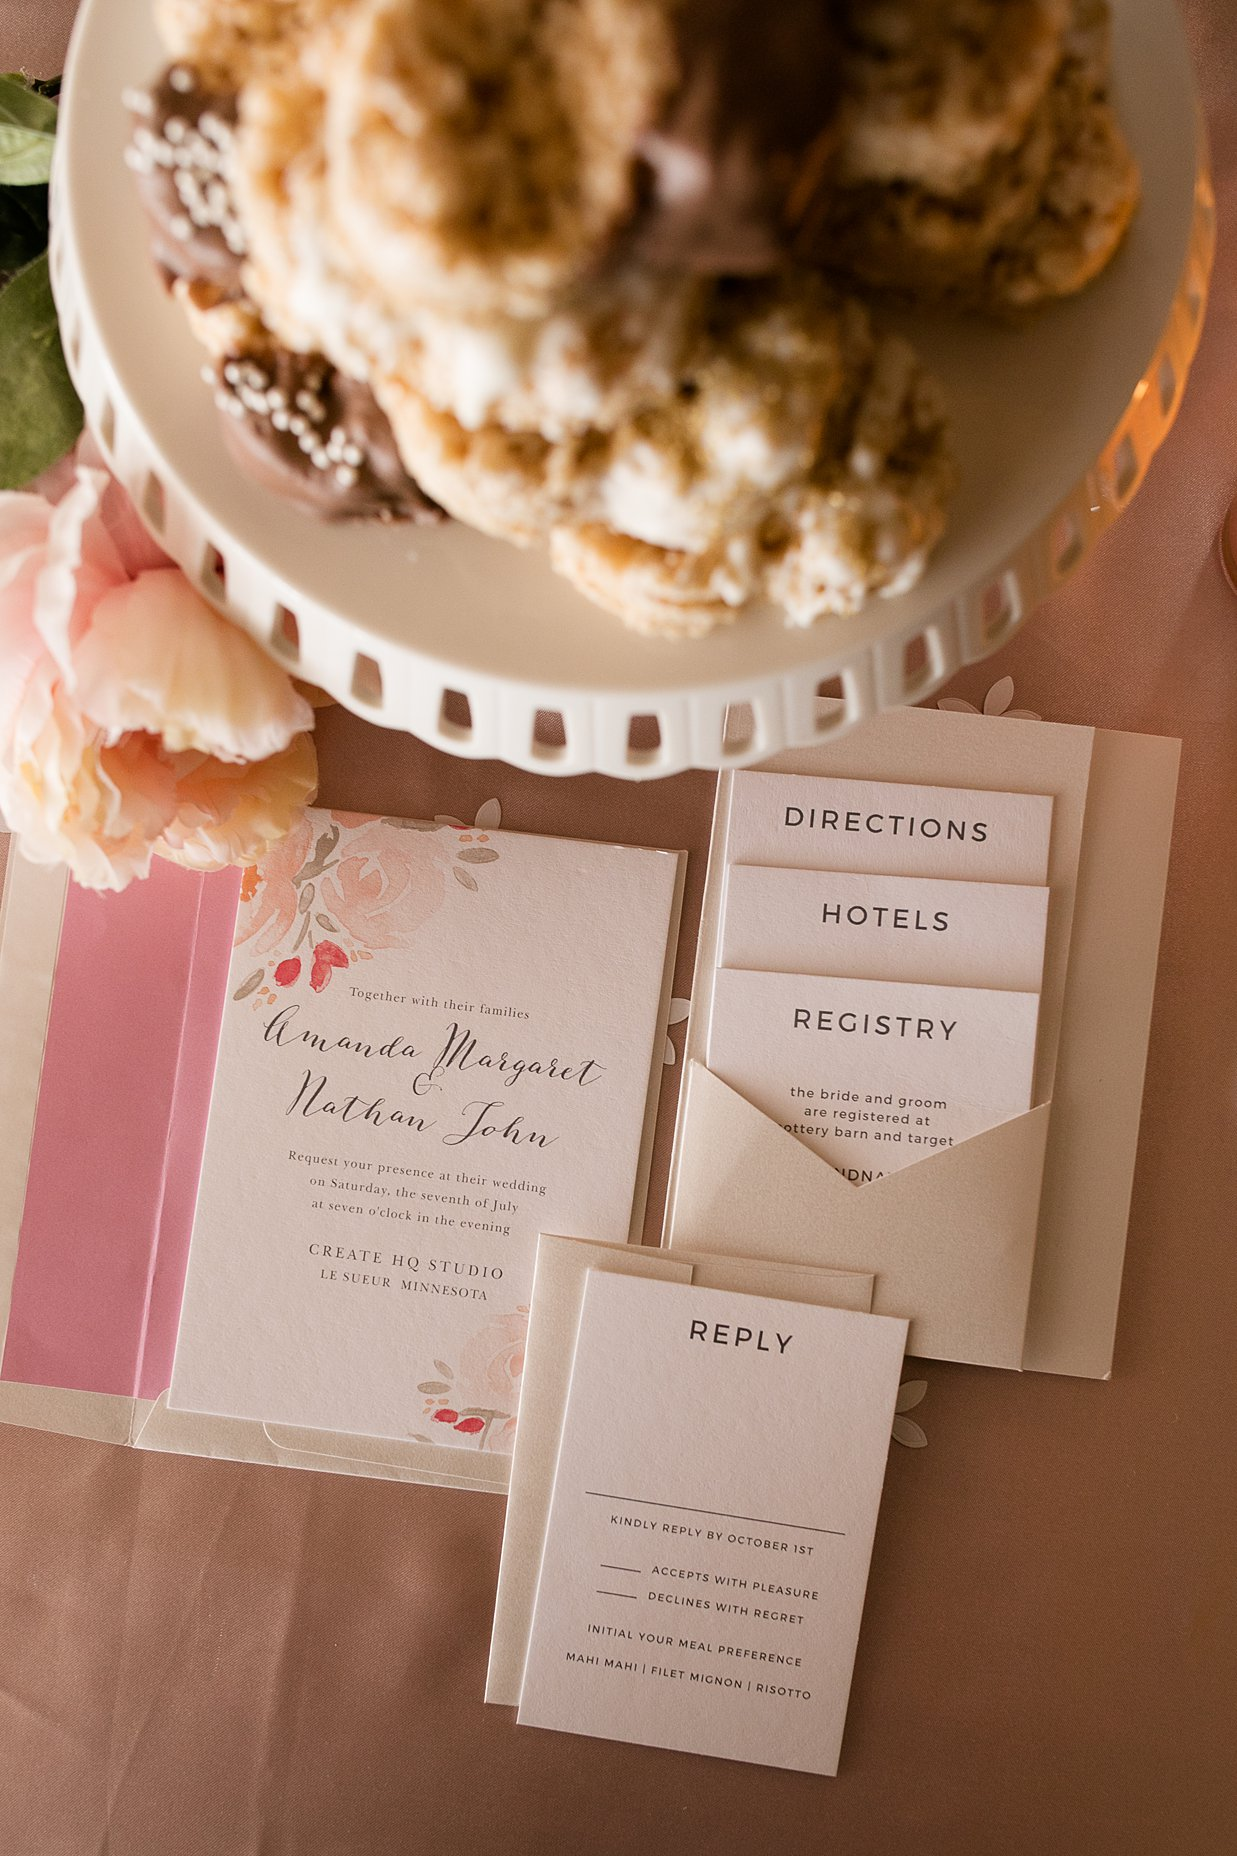 Alice Hq Photography | Basic Invite Styled Shoot11.jpg